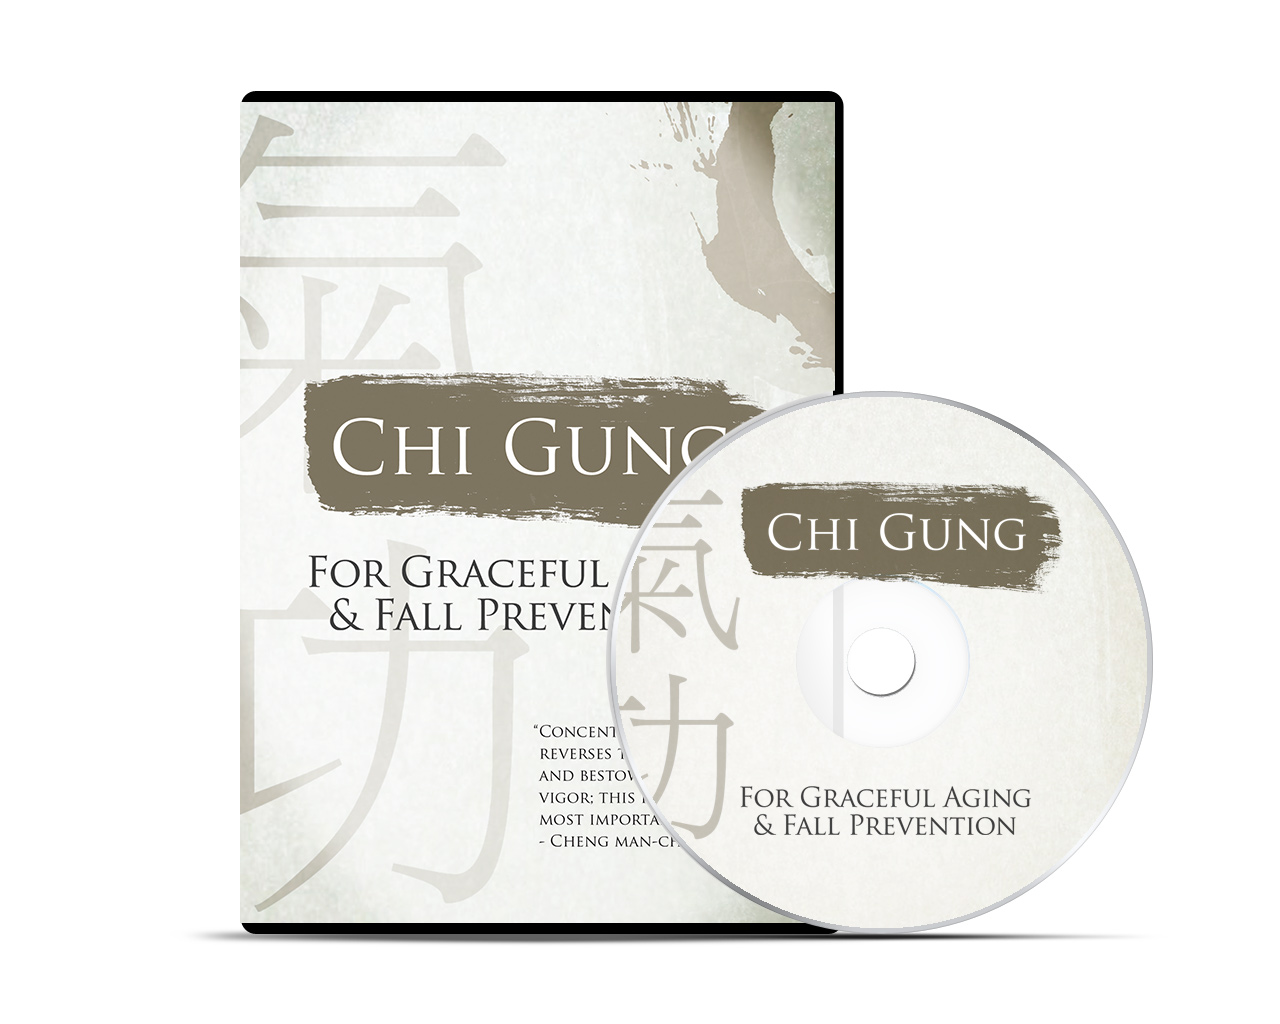 Chi Gung DVD Packaging